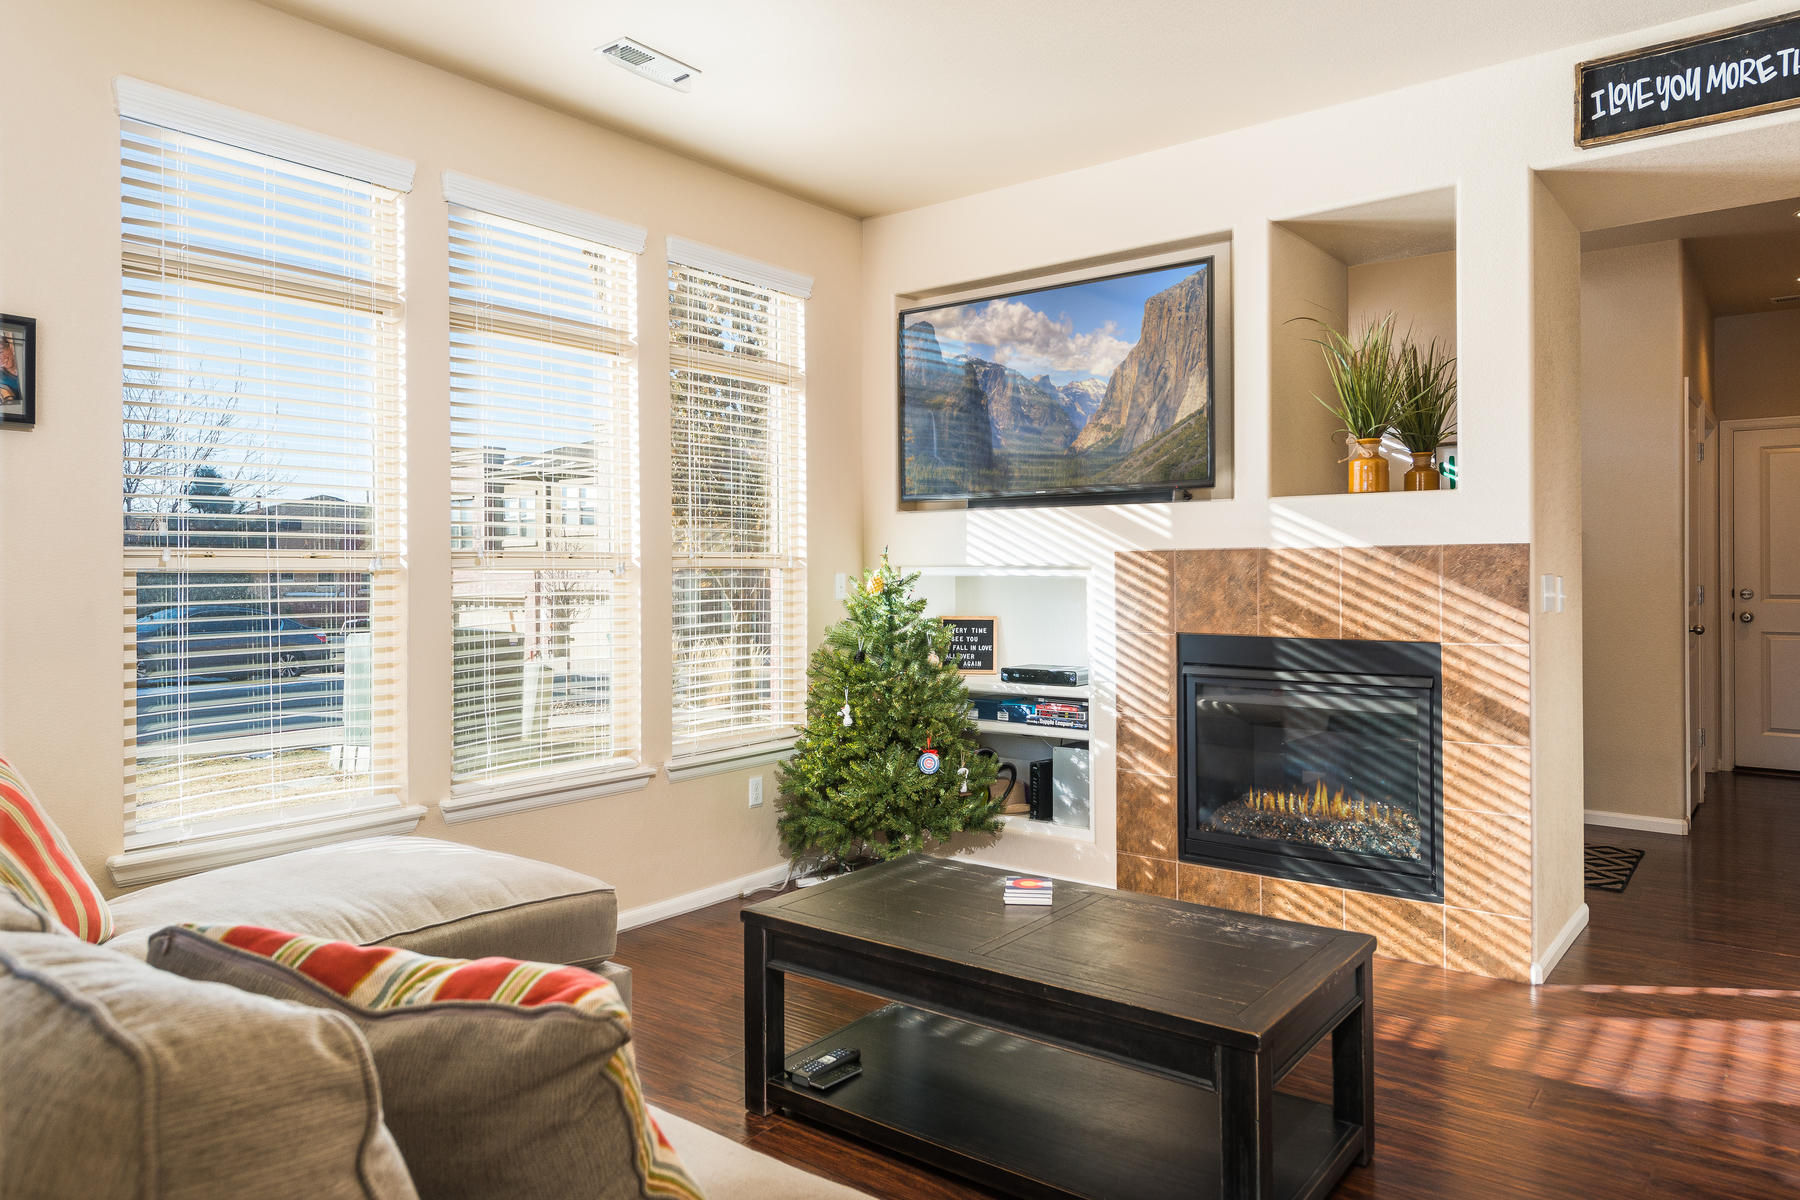 Additional photo for property listing at Great location in the Villas at Highland Park! 8993 E Nichols Place Bldg 6 Centennial, Colorado 80112 United States